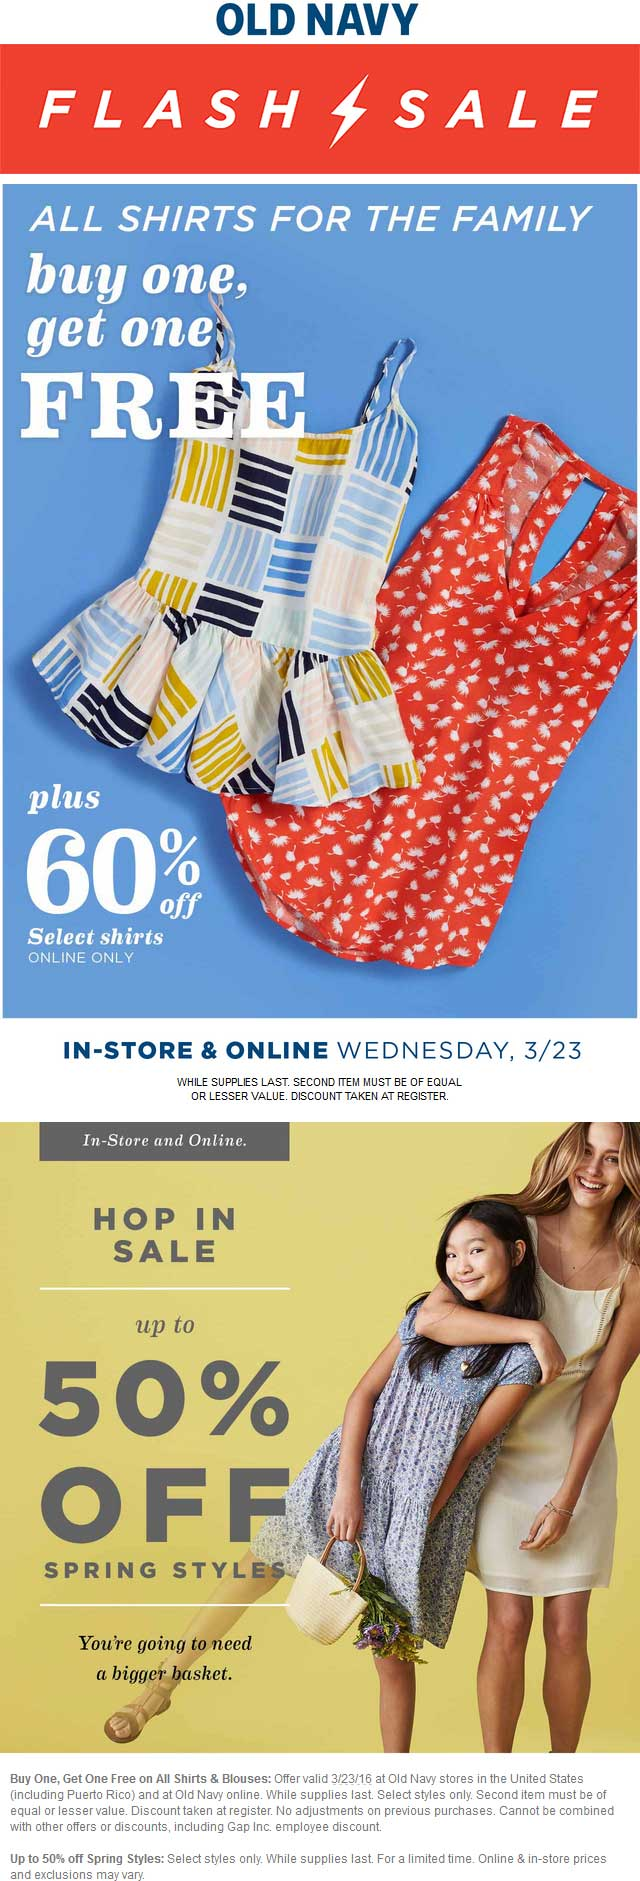 Old Navy Coupon January 2017 two-for-one shirts & more today at Old Navy, ditto online